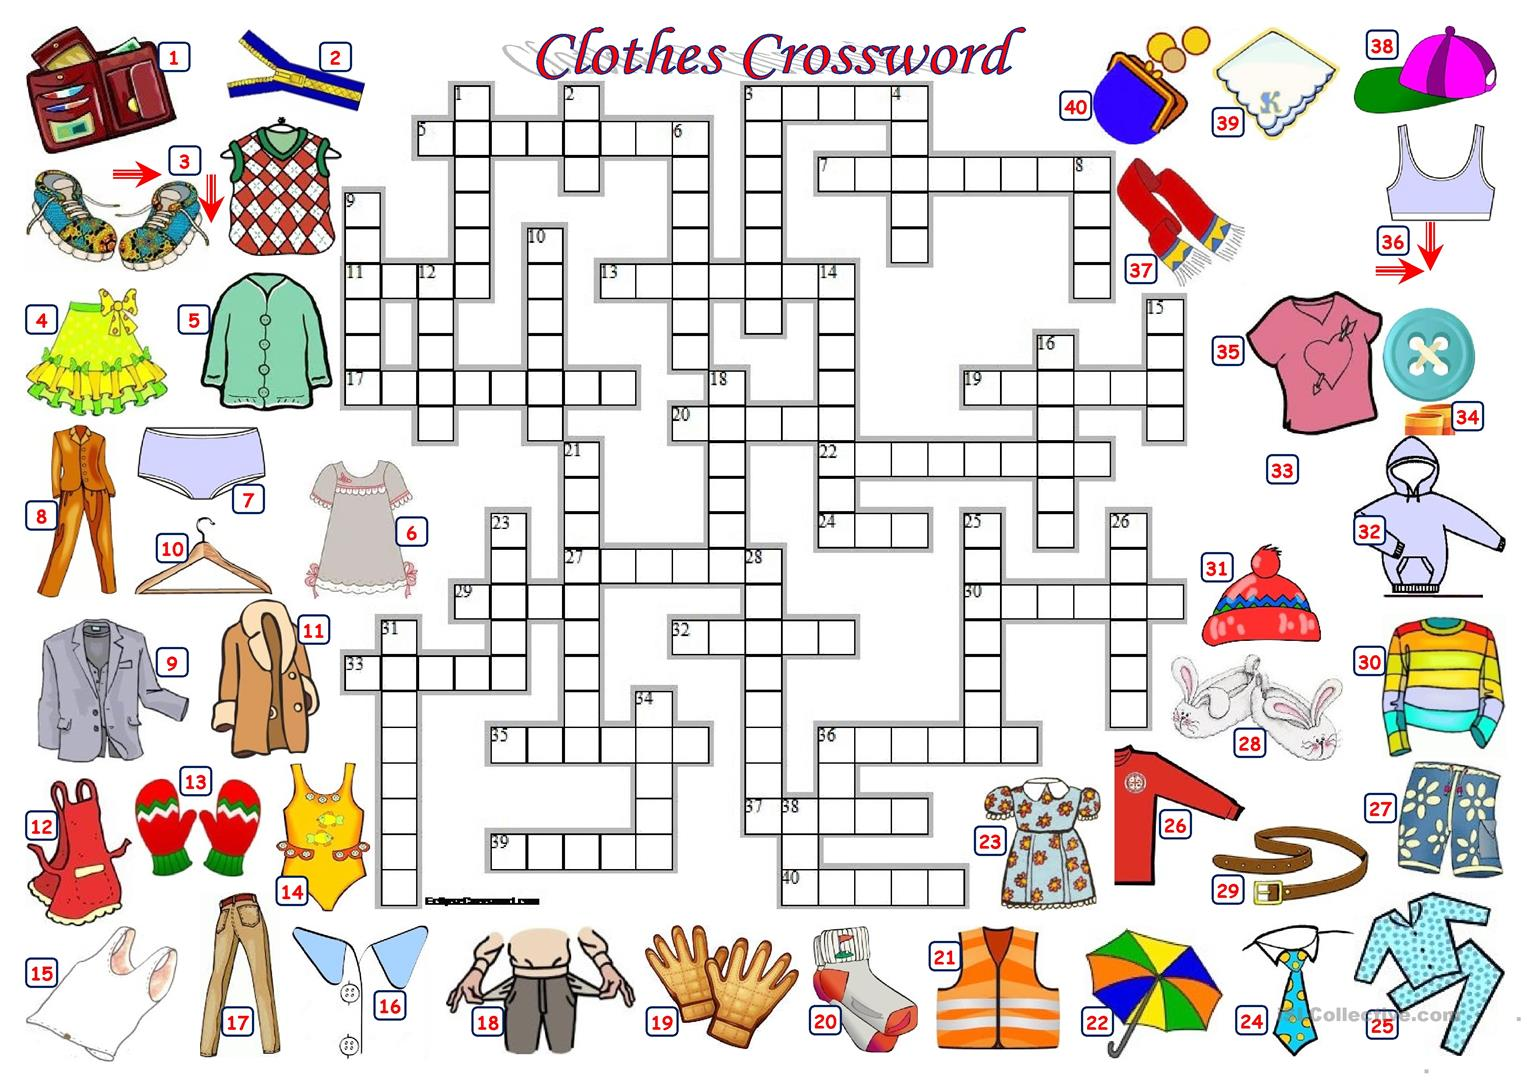 Ingredients in old fashioned crossword 24